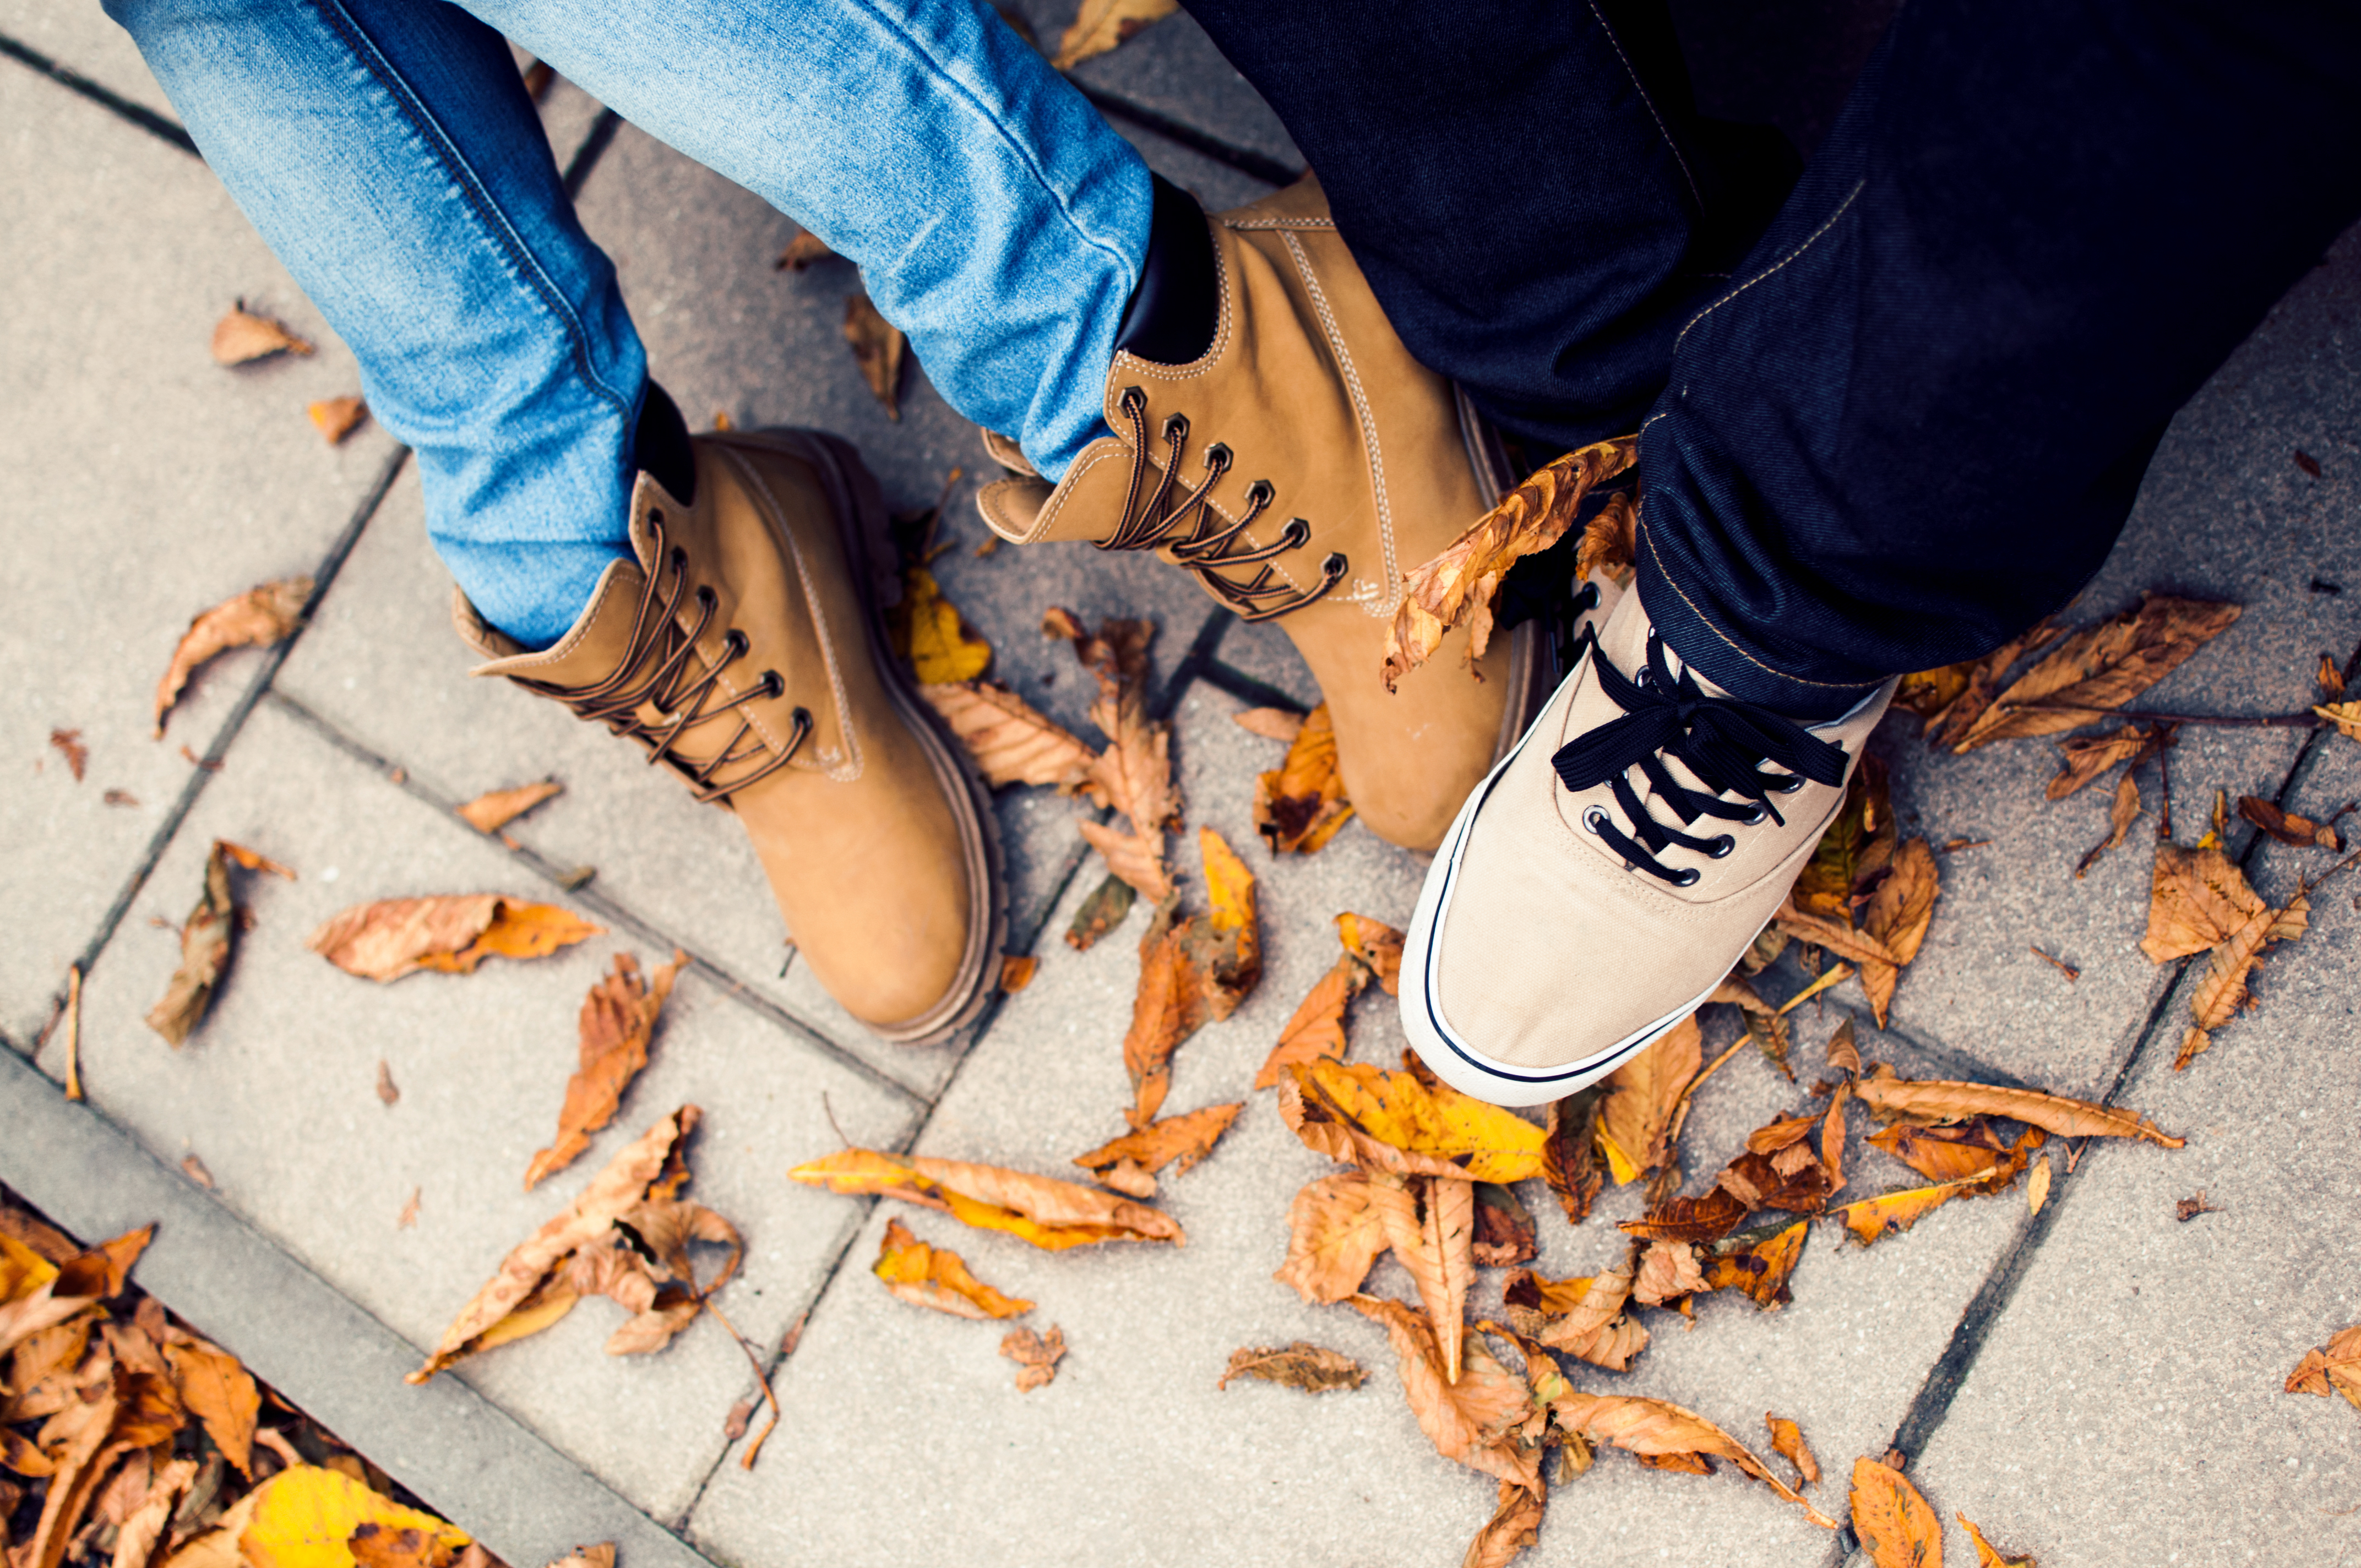 Two pairs of feet in shoes photo